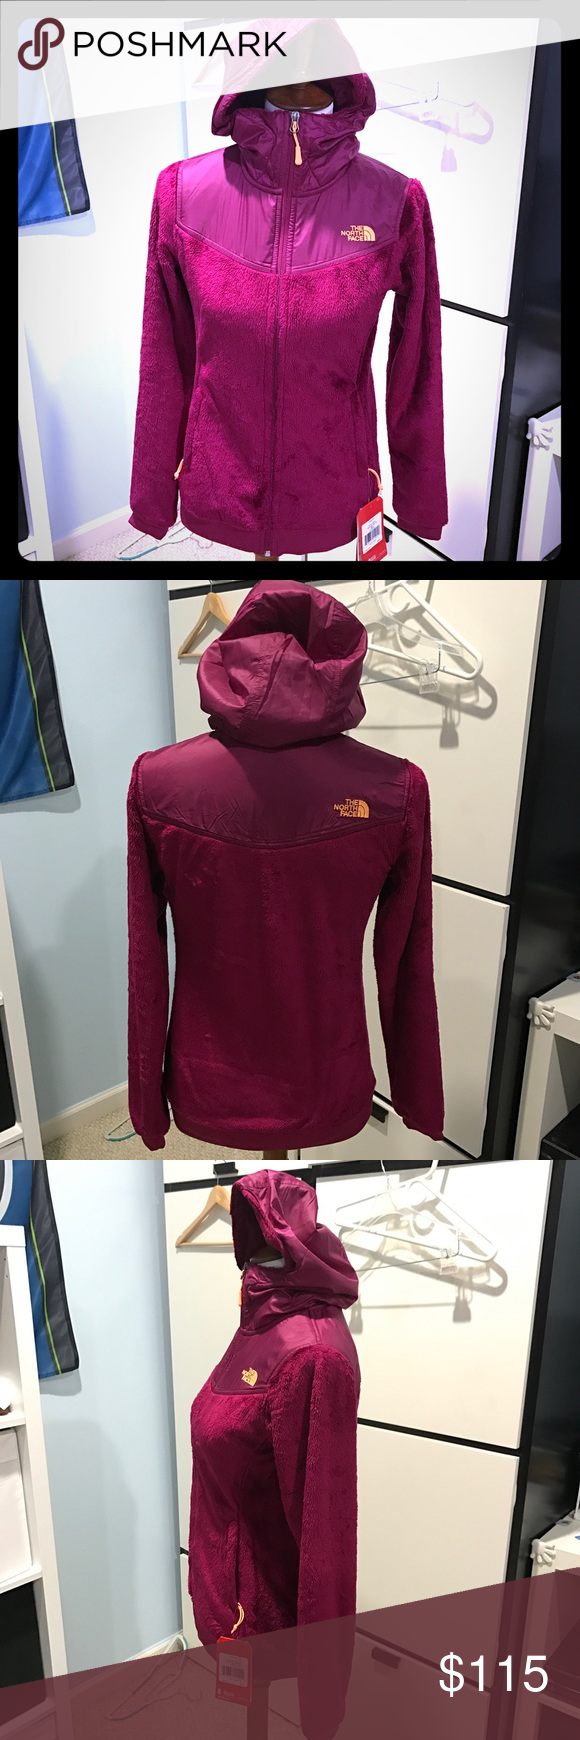 ffcf733170c0 North Face Oso Hoodie Plum Authentic North Face Oso Jacket! Super soft!  NWT! Rare find Color. Plum to red wine color! Just in time for Fall and  Winter!!